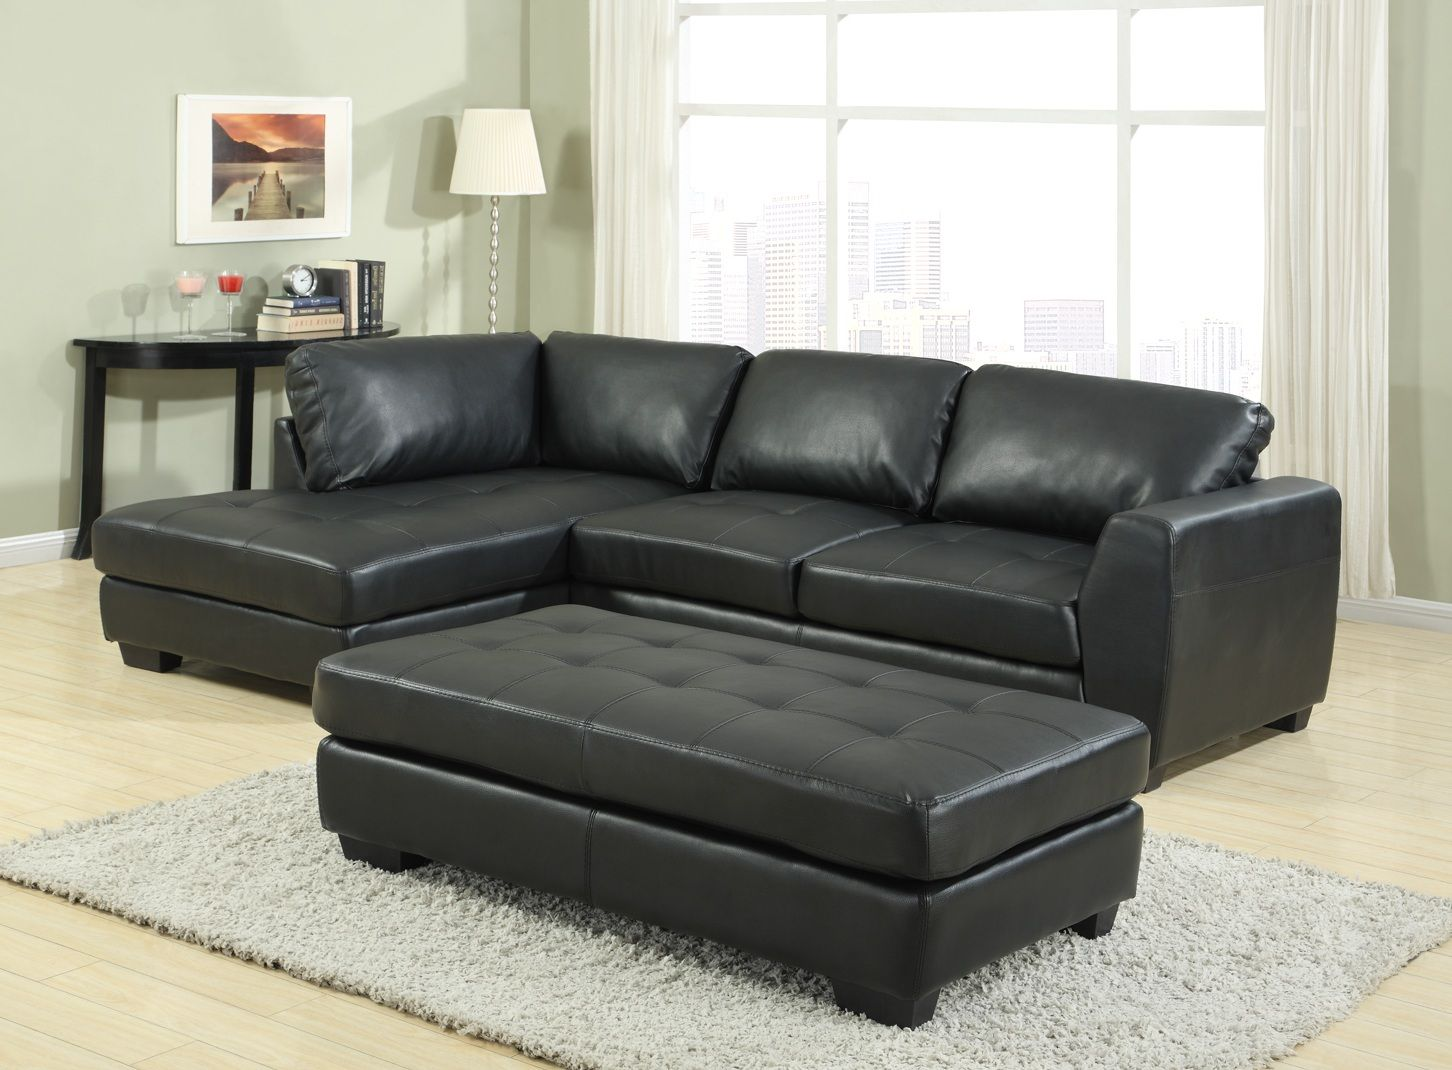 2018 Leather Corner Sofa Beds You Cannot Ask For More With Images Leather Corner Sofa Corner Sofa Comfortable Sofa